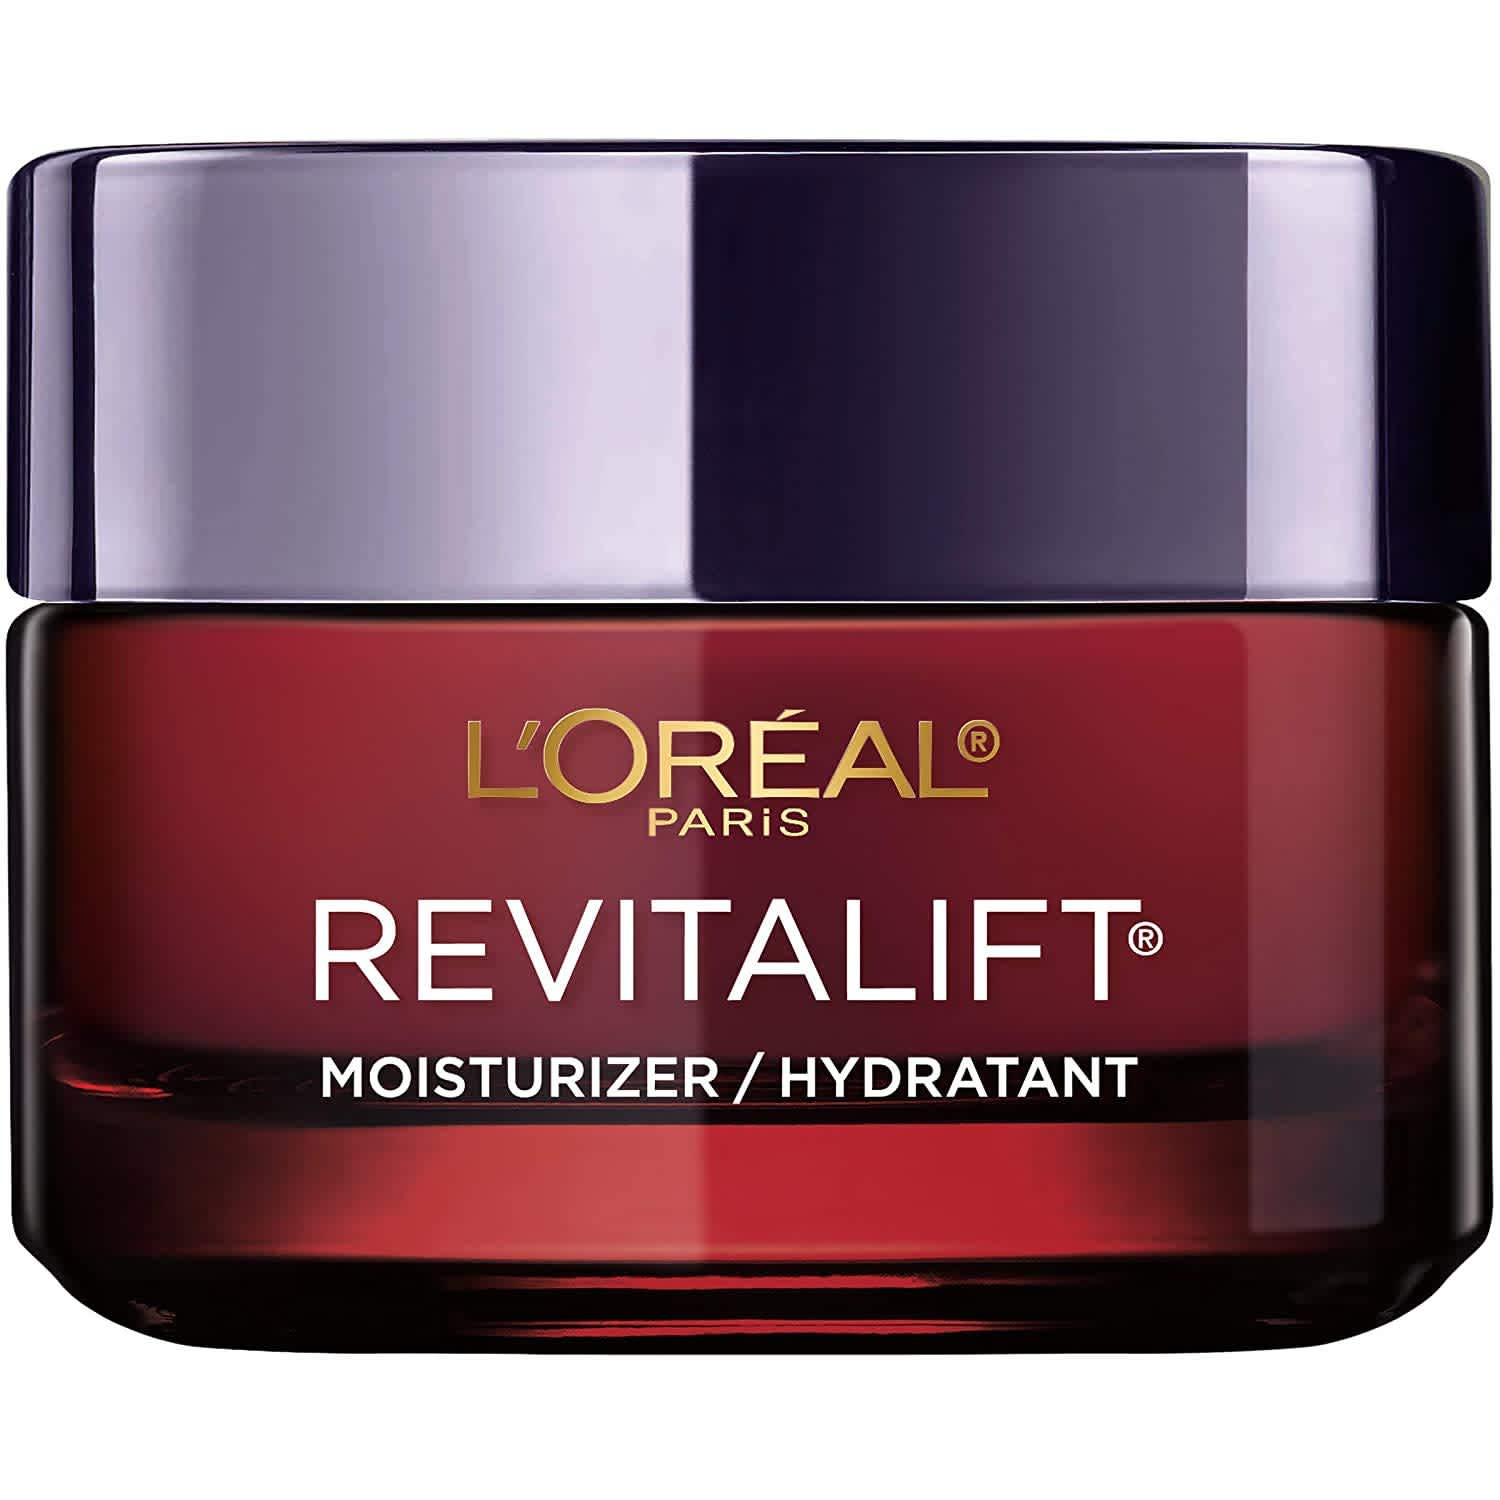 L'Oreal Beauty and Personal Care at Amazon